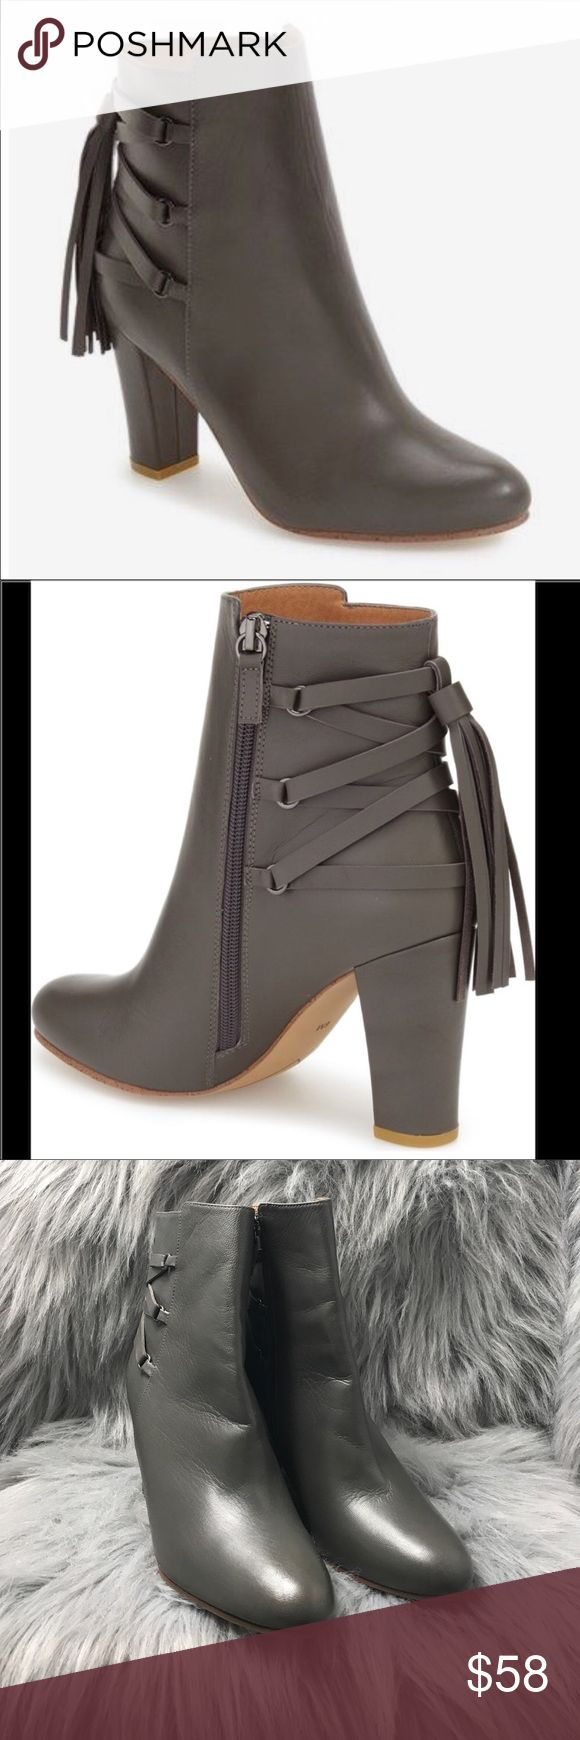 Halogen Almond Toe Gray Tassel Heeled Ankle Boots Halogen Almond Toe Gray Boots Size 9 No Box Few Scratches Toe Area Refer to Pic Never Been Worn Halogen Shoes Ankle Boots & Booties